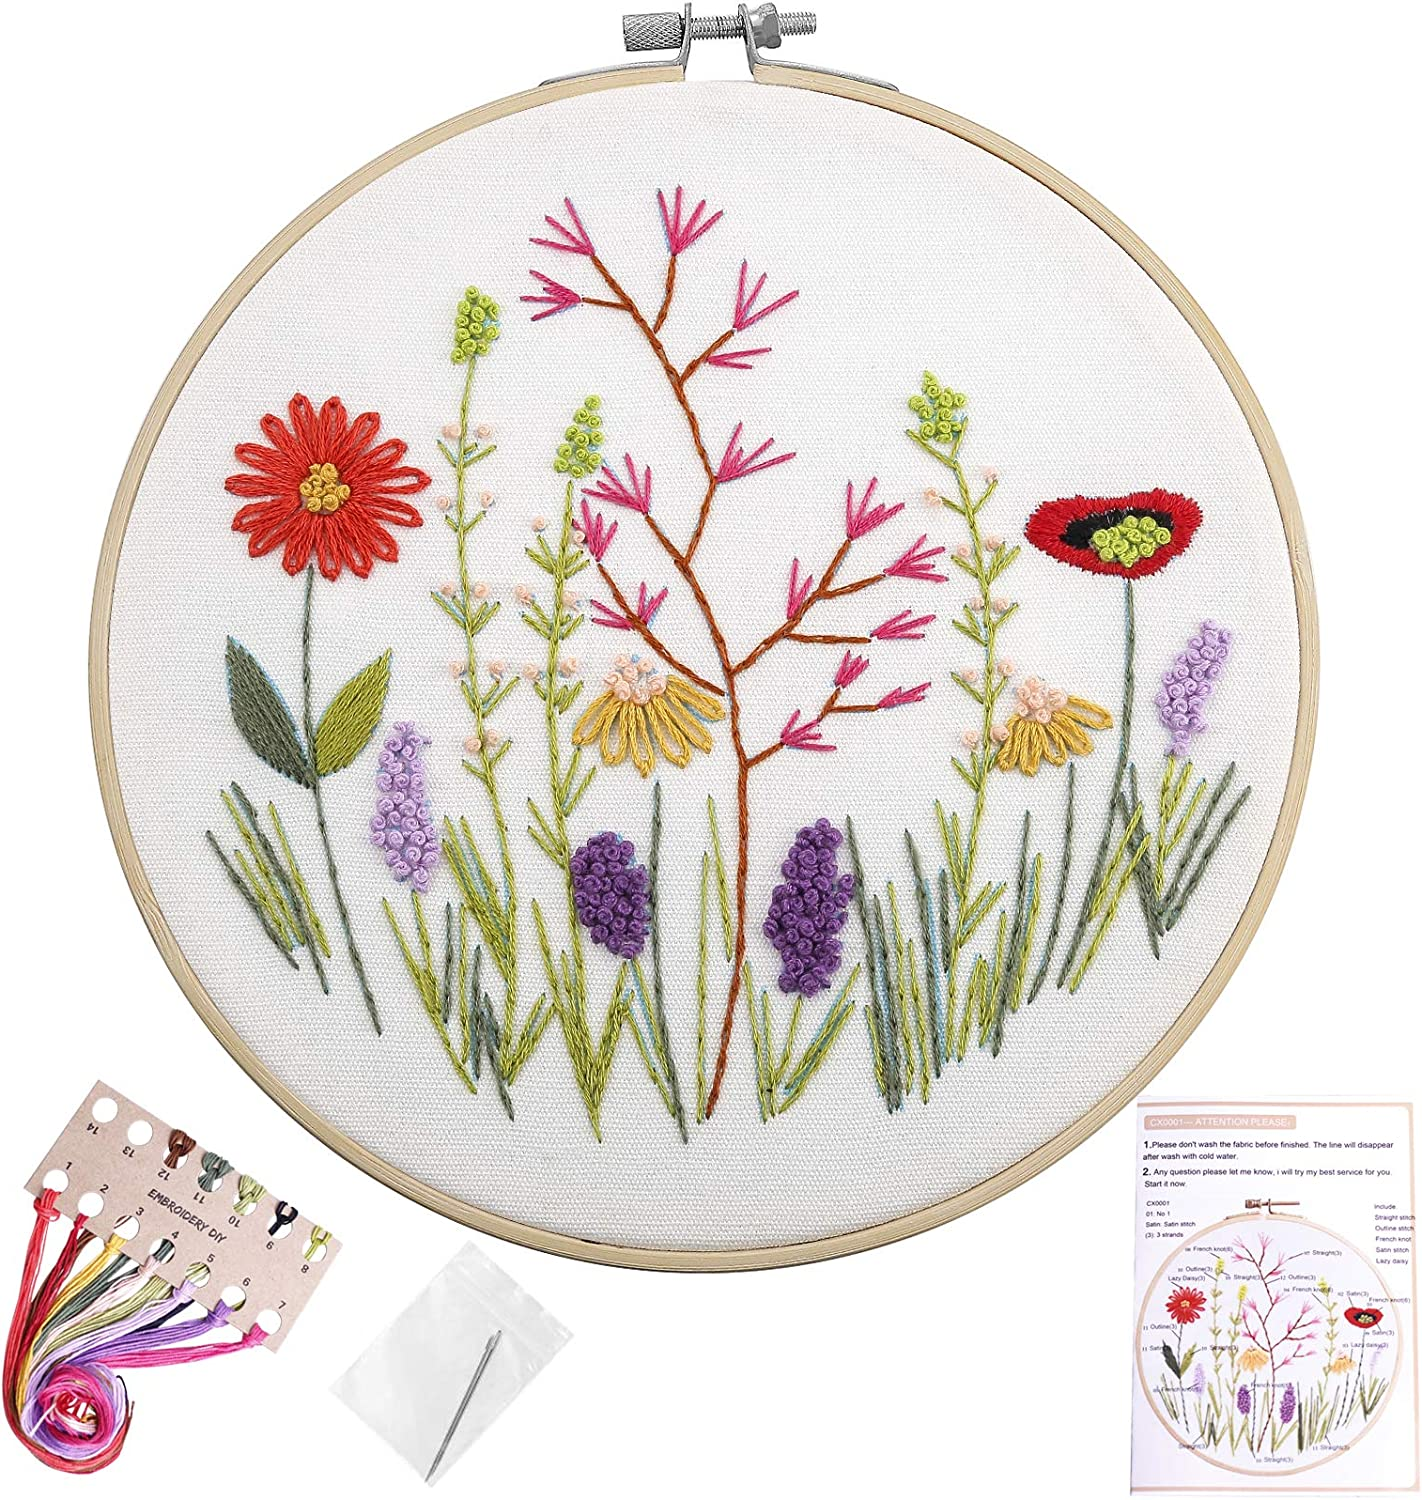 100/% Cotton DIY Embroidery Starter Kits DIY Needlework for Beginners Kids Adults Full Range of Stamped Cross Stitch Kits 36/×44CM Butterfly Love Flower 18 Printed 11CT